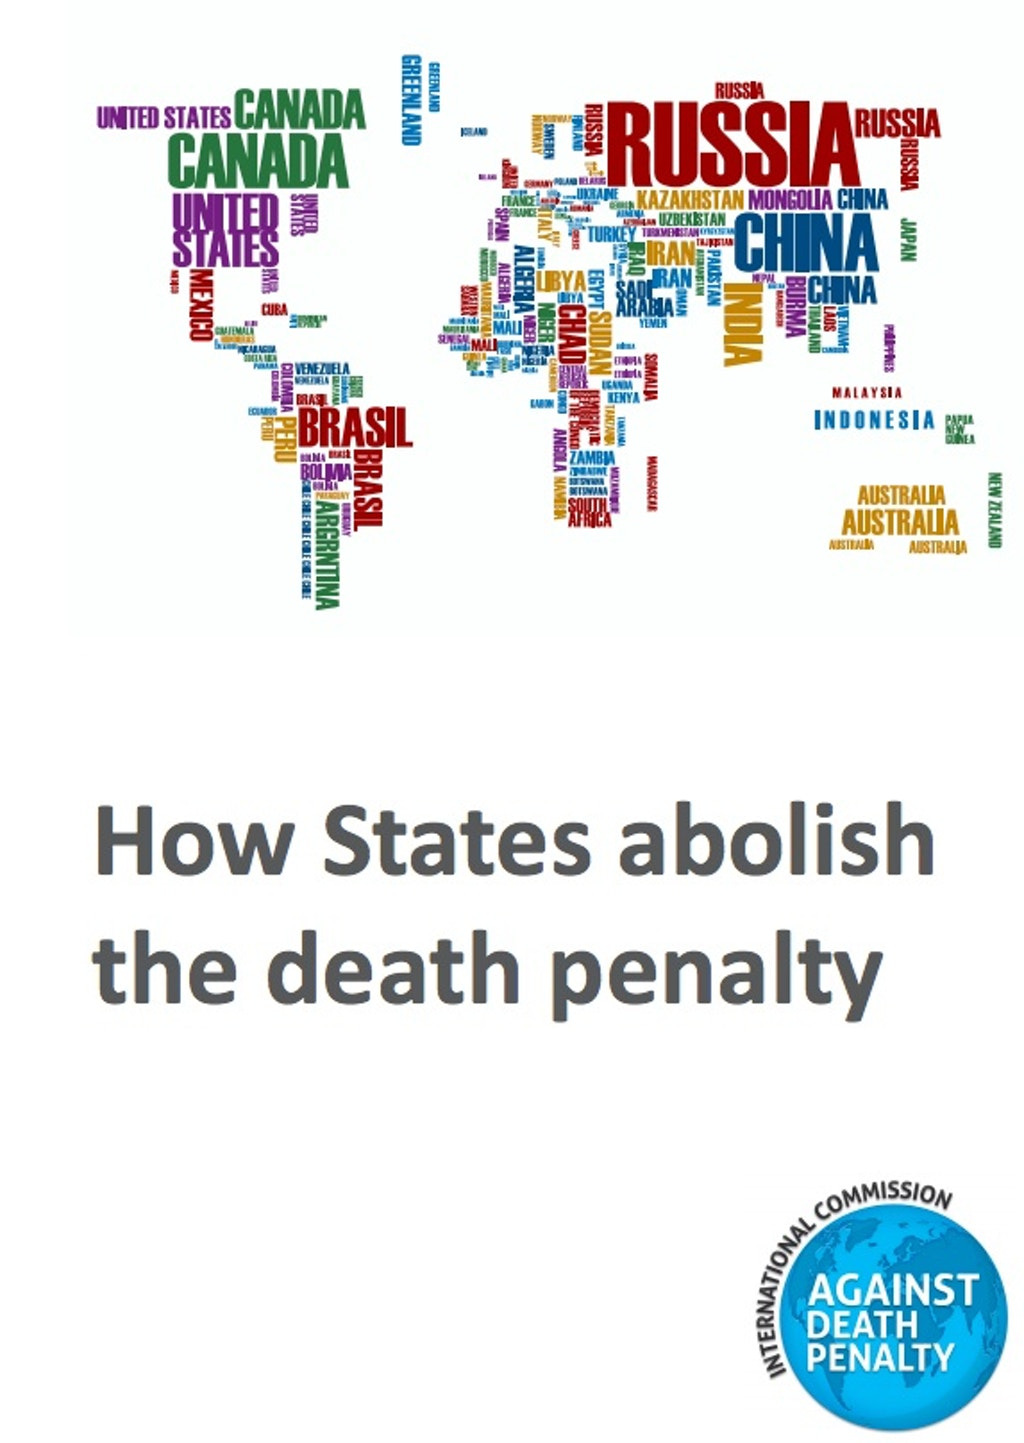 INTERNATIONAL: New Report Examines Countries That Have Abandoned Death Penalty